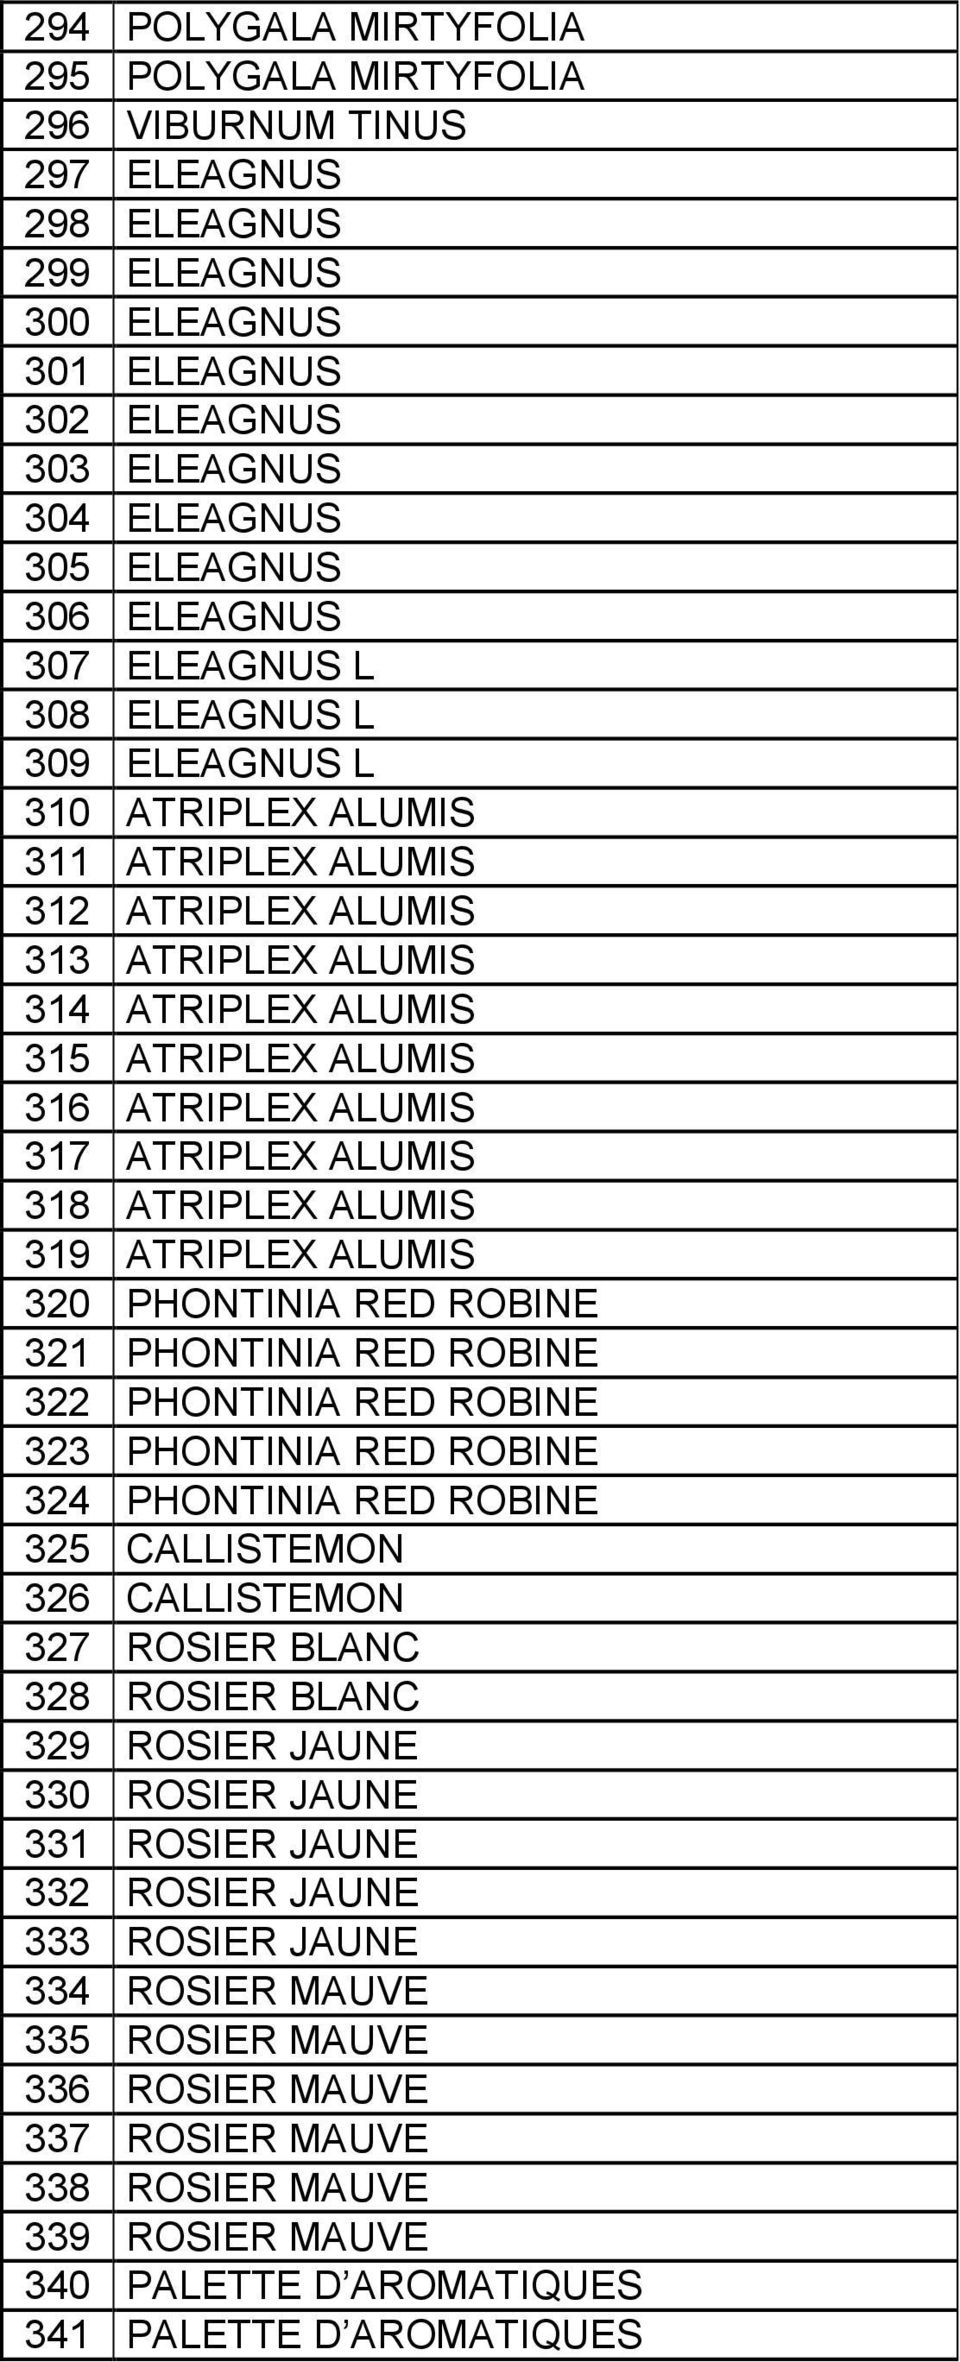 ALUMIS 318 ATRIPLEX ALUMIS 319 ATRIPLEX ALUMIS 320 PHONTINIA RED ROBINE 321 PHONTINIA RED ROBINE 322 PHONTINIA RED ROBINE 323 PHONTINIA RED ROBINE 324 PHONTINIA RED ROBINE 325 CALLISTEMON 326